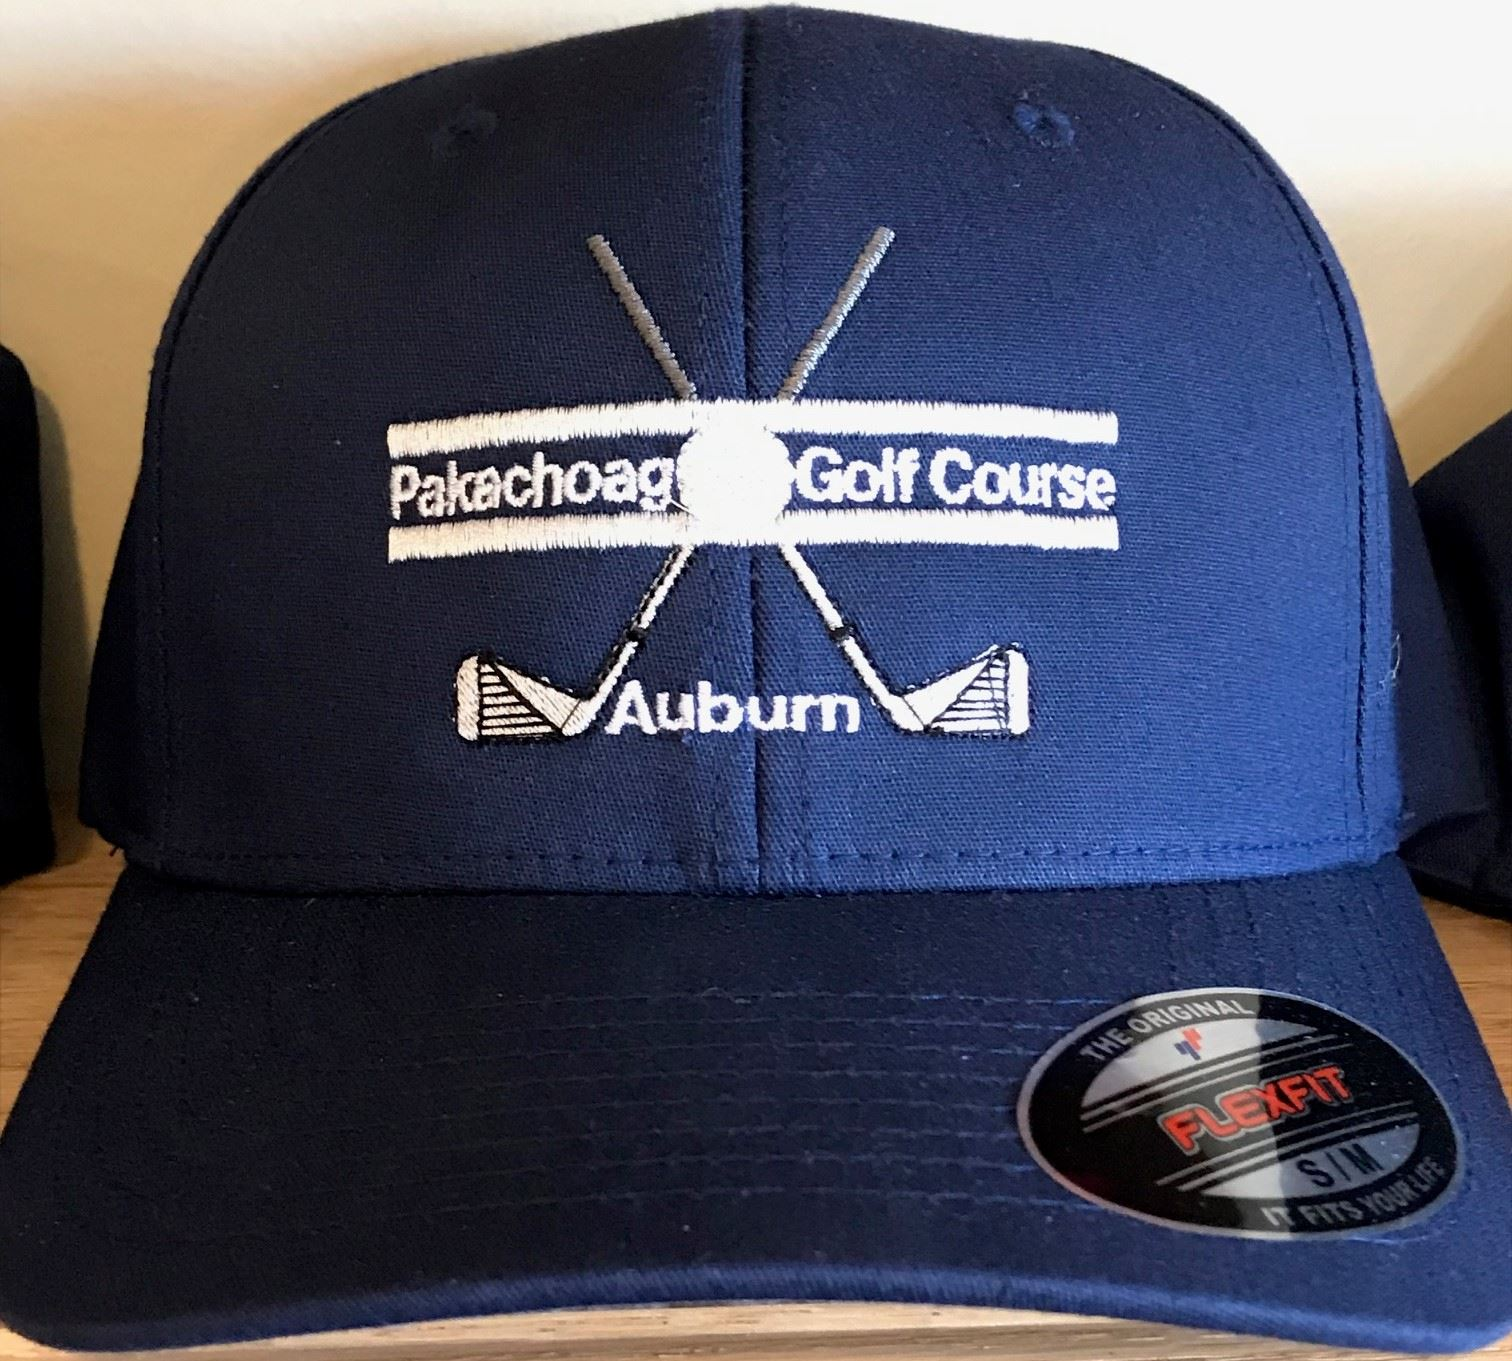 Fitted hat with golf course logo